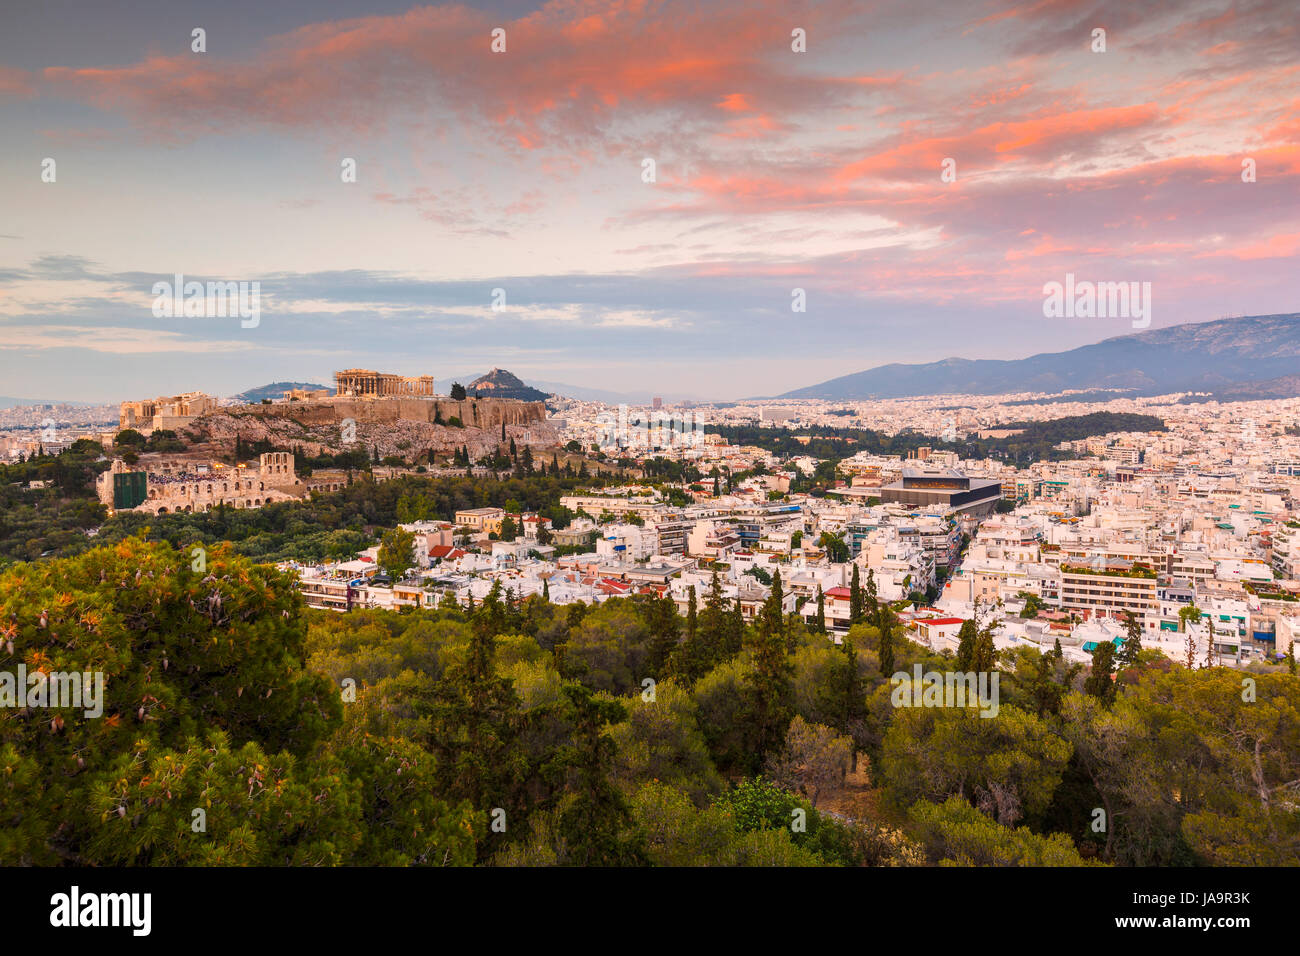 Acropolis and view of the city of Athens, Greece. Stock Photo